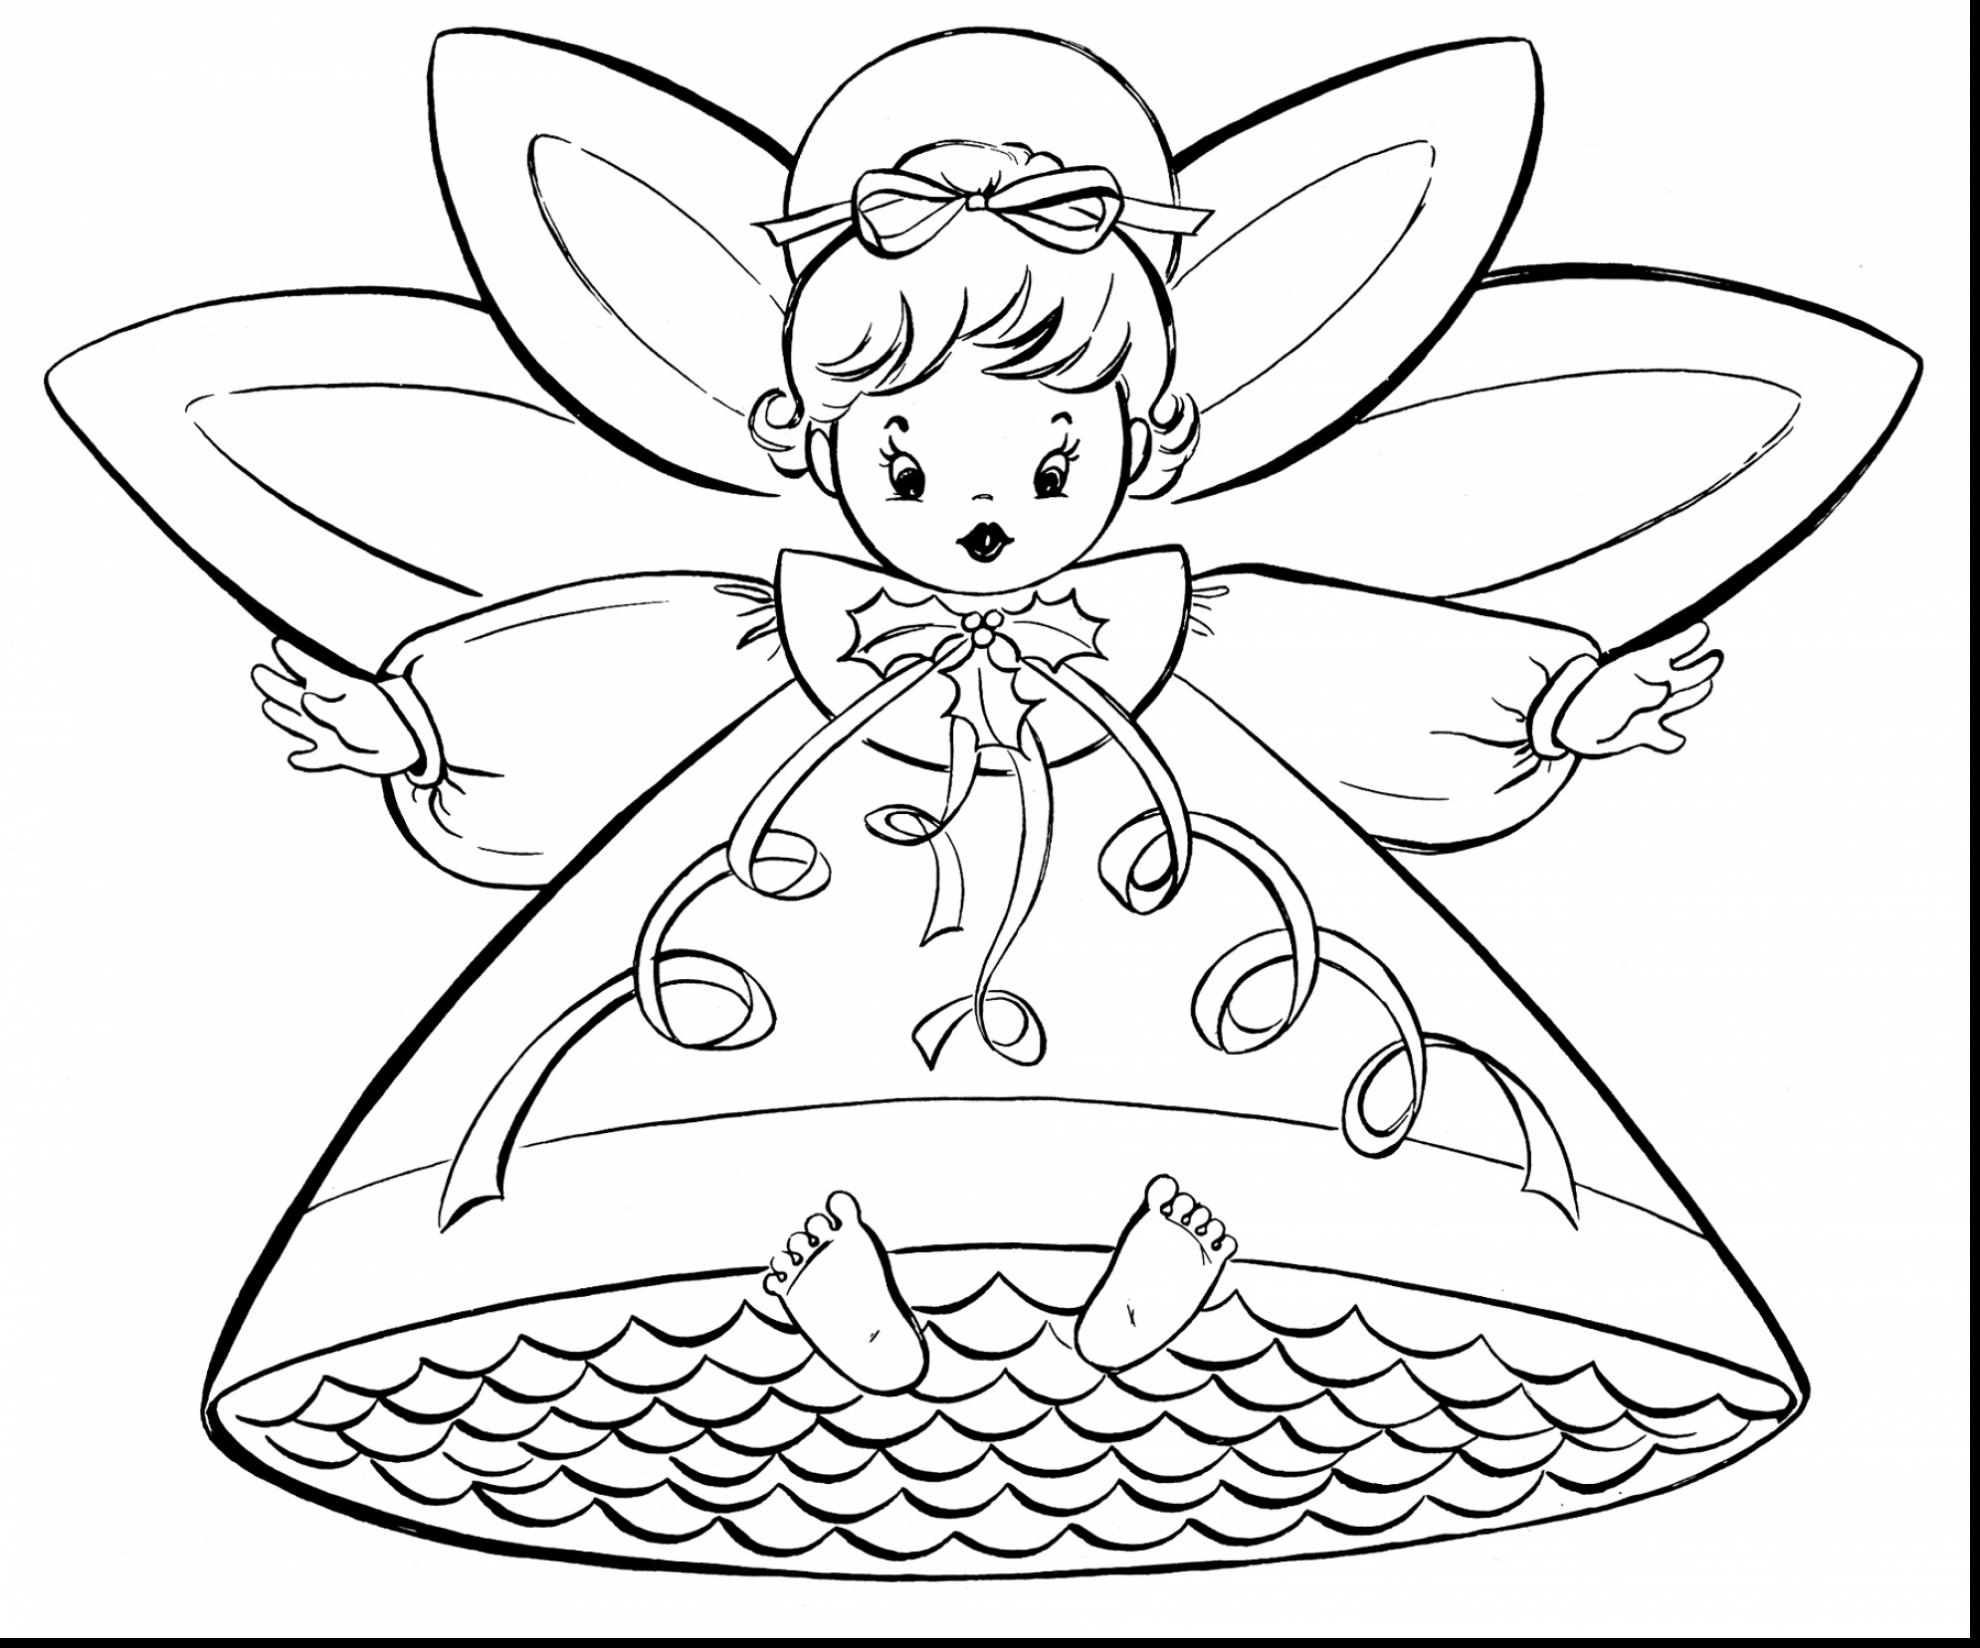 Classy Inspiration Cute Coloring Pages for Adults Free Printable Printable Of Cute Coloring Pages for Girls Printable Kids Colouring Pages Kids Gallery